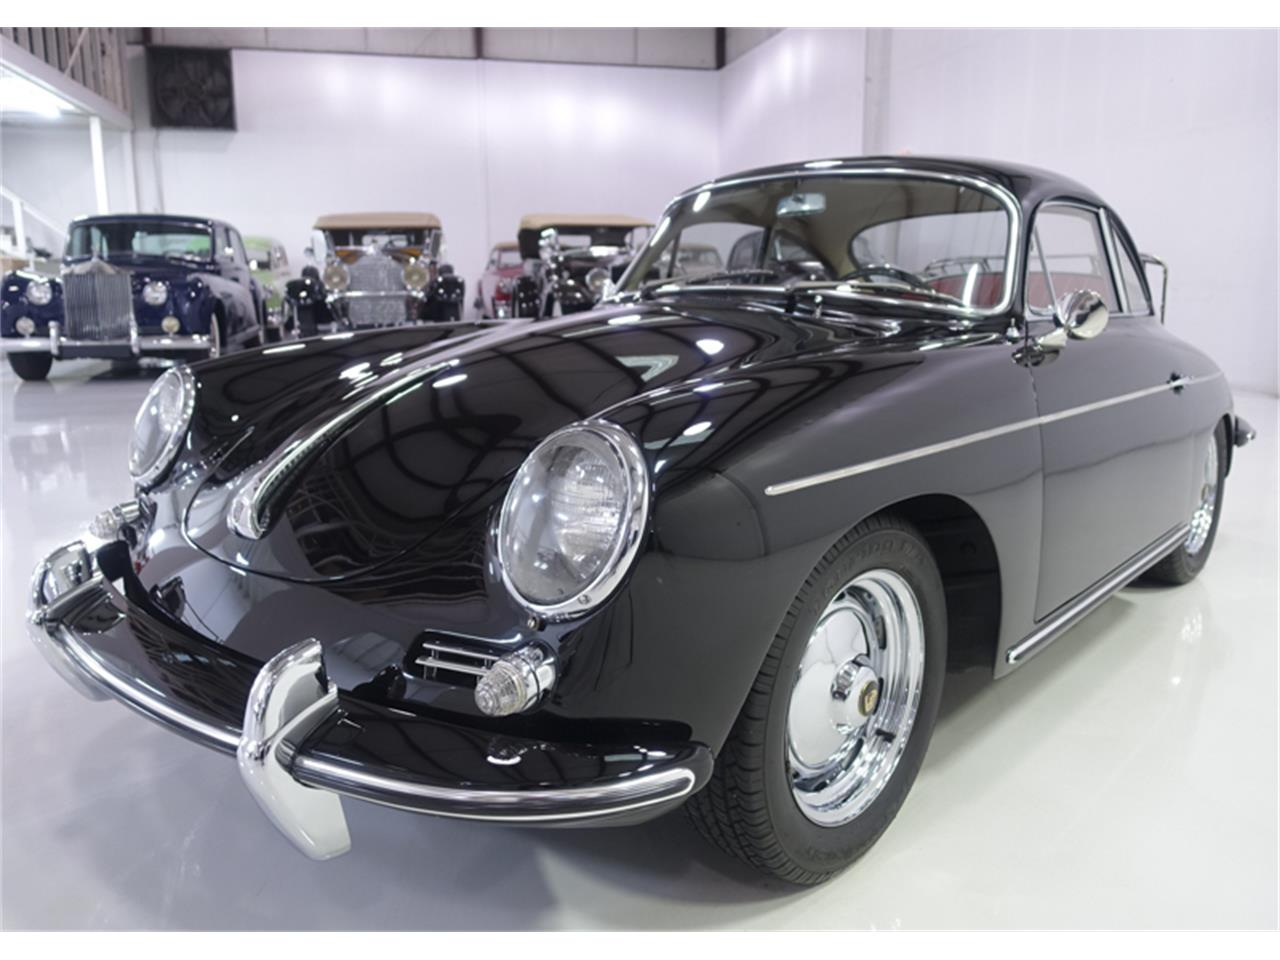 Large Picture of Classic '63 Porsche 356B located in St. Louis Missouri - $109,900.00 Offered by Daniel Schmitt & Co. - PGEA